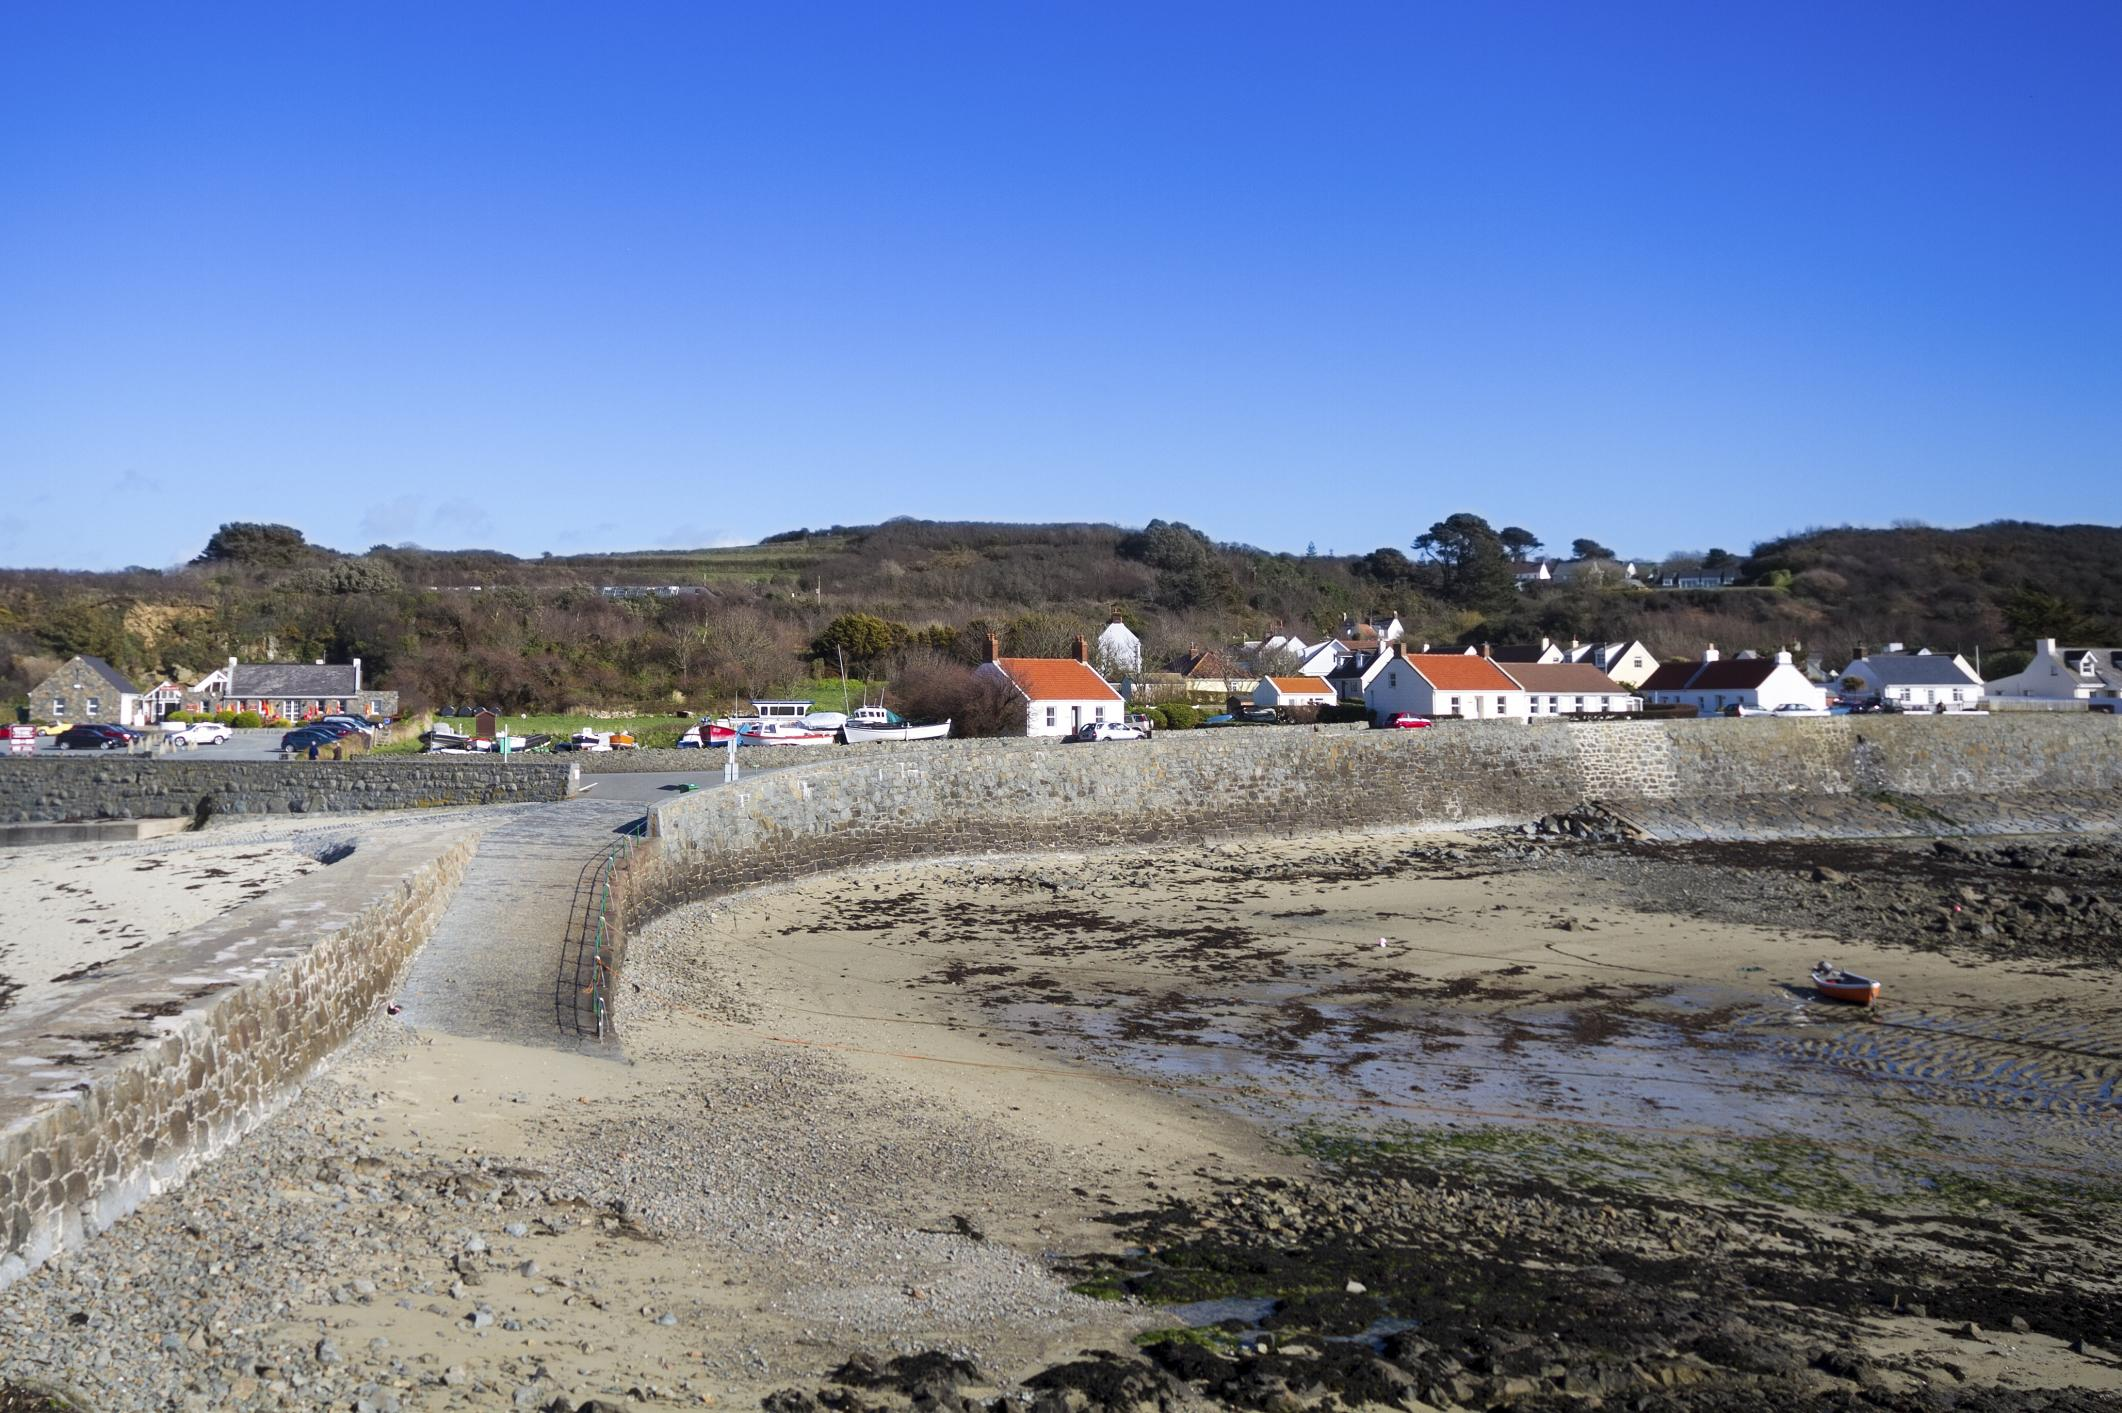 Known for having Britain's cleanest beach, the prettiest harbour town in Europe and the world's smallest chapel, Guernsey is a picturesque island found between the south coast of England and the north-west coastFrance.